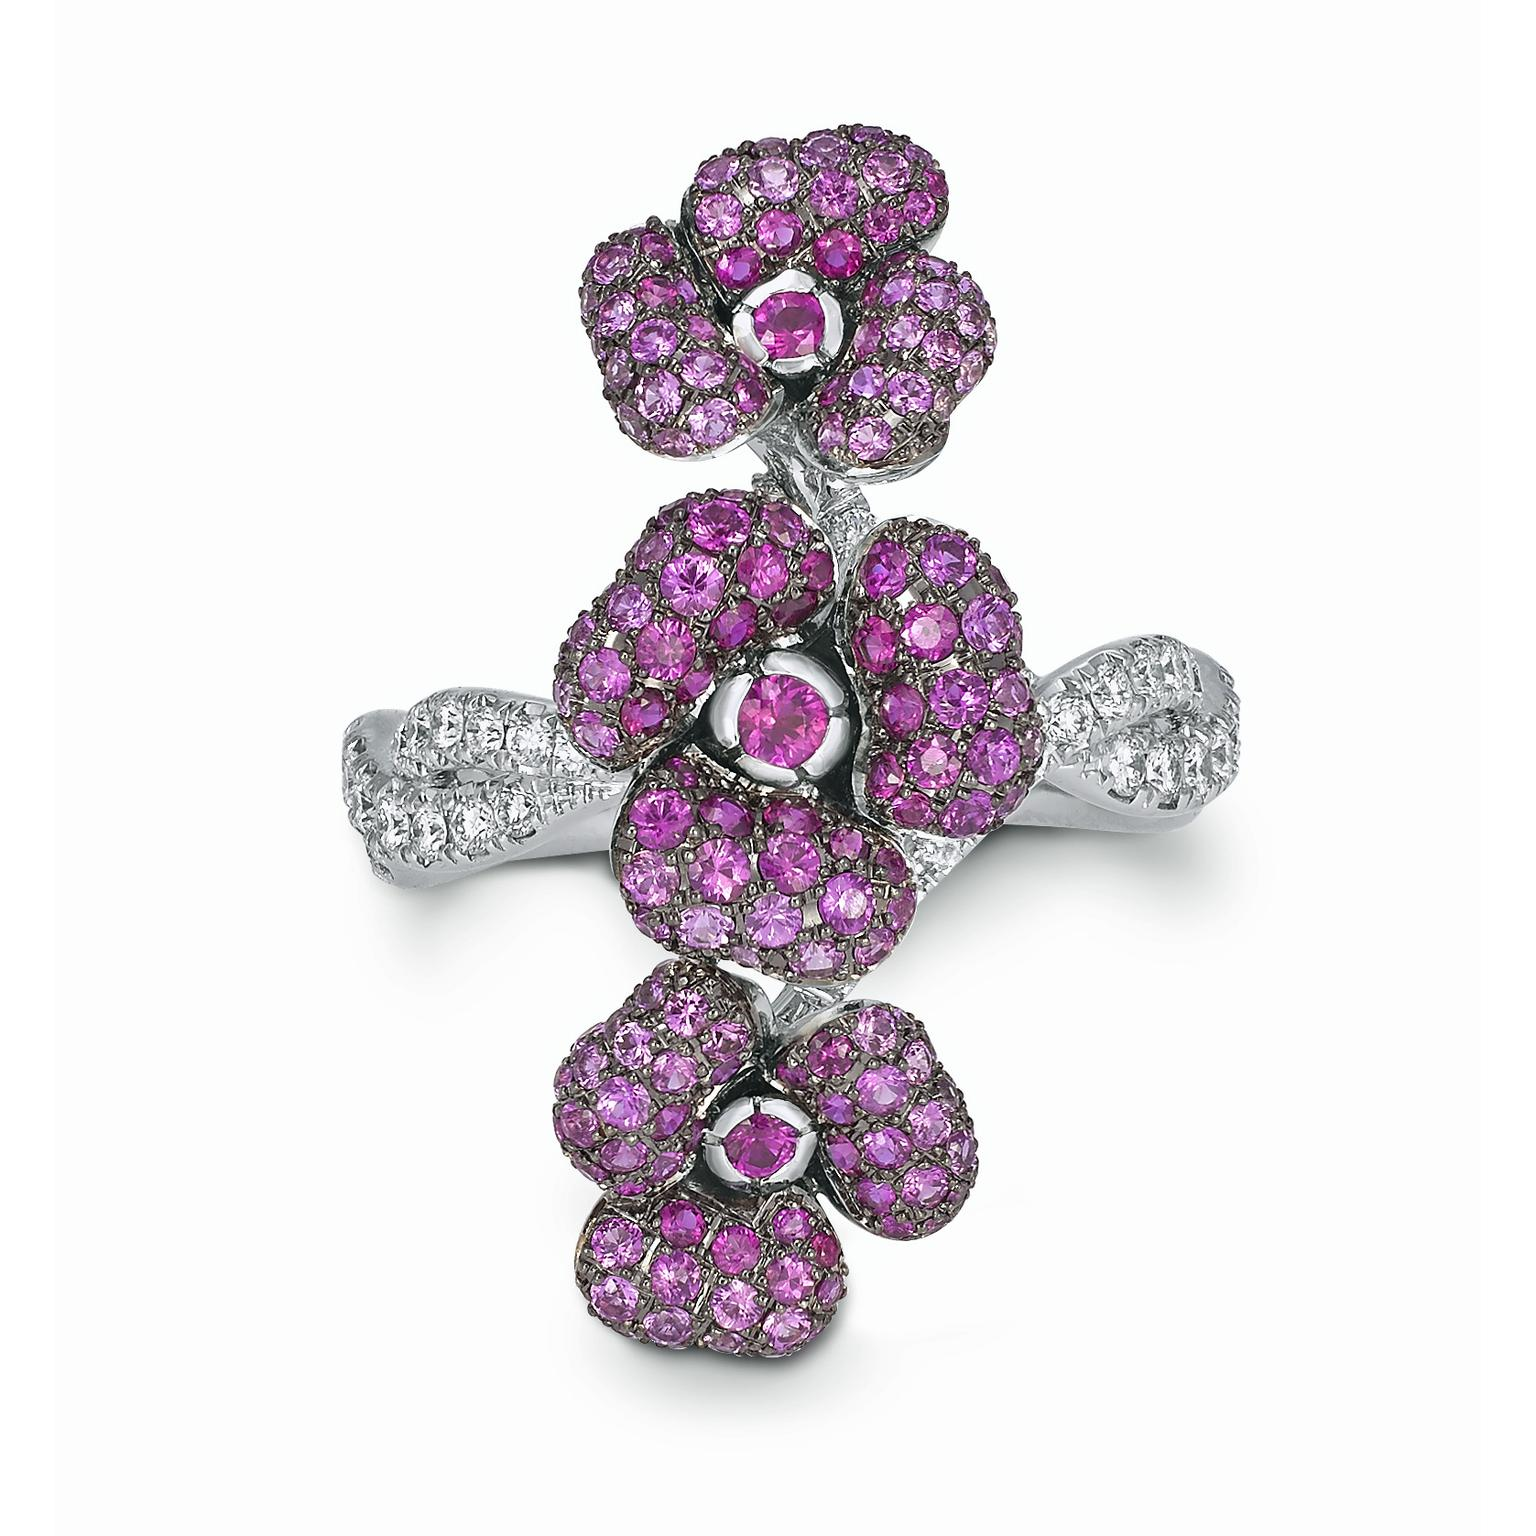 VANLELES Enchanted Garden ruby, pink sapphire and diamond ring